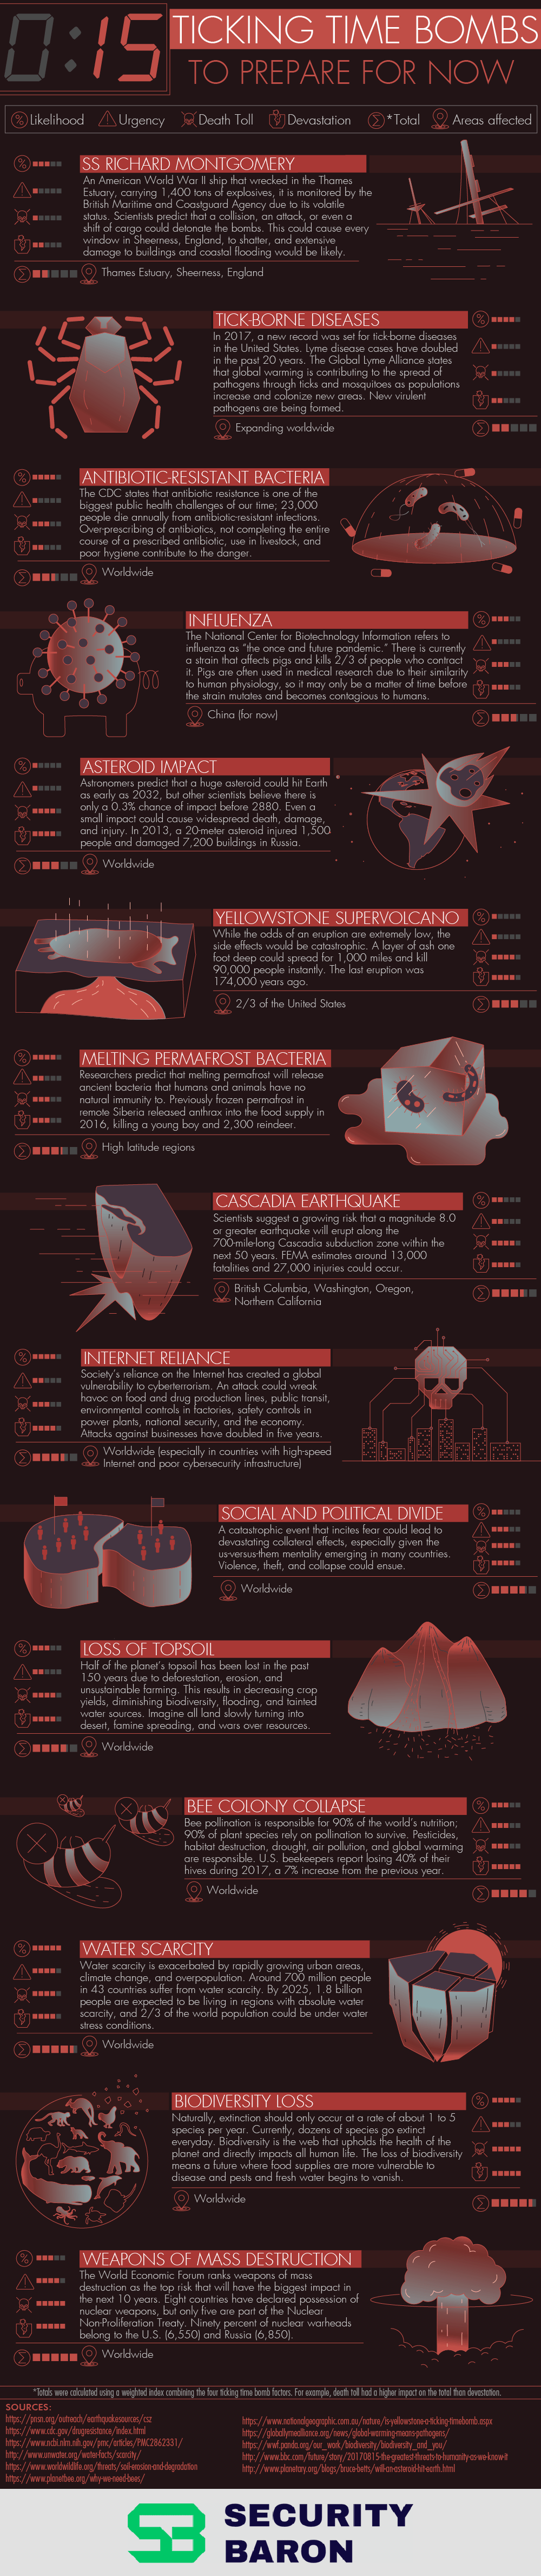 21st Century Disaster Predictions: 15 Ticking Time Bombs - Infographic